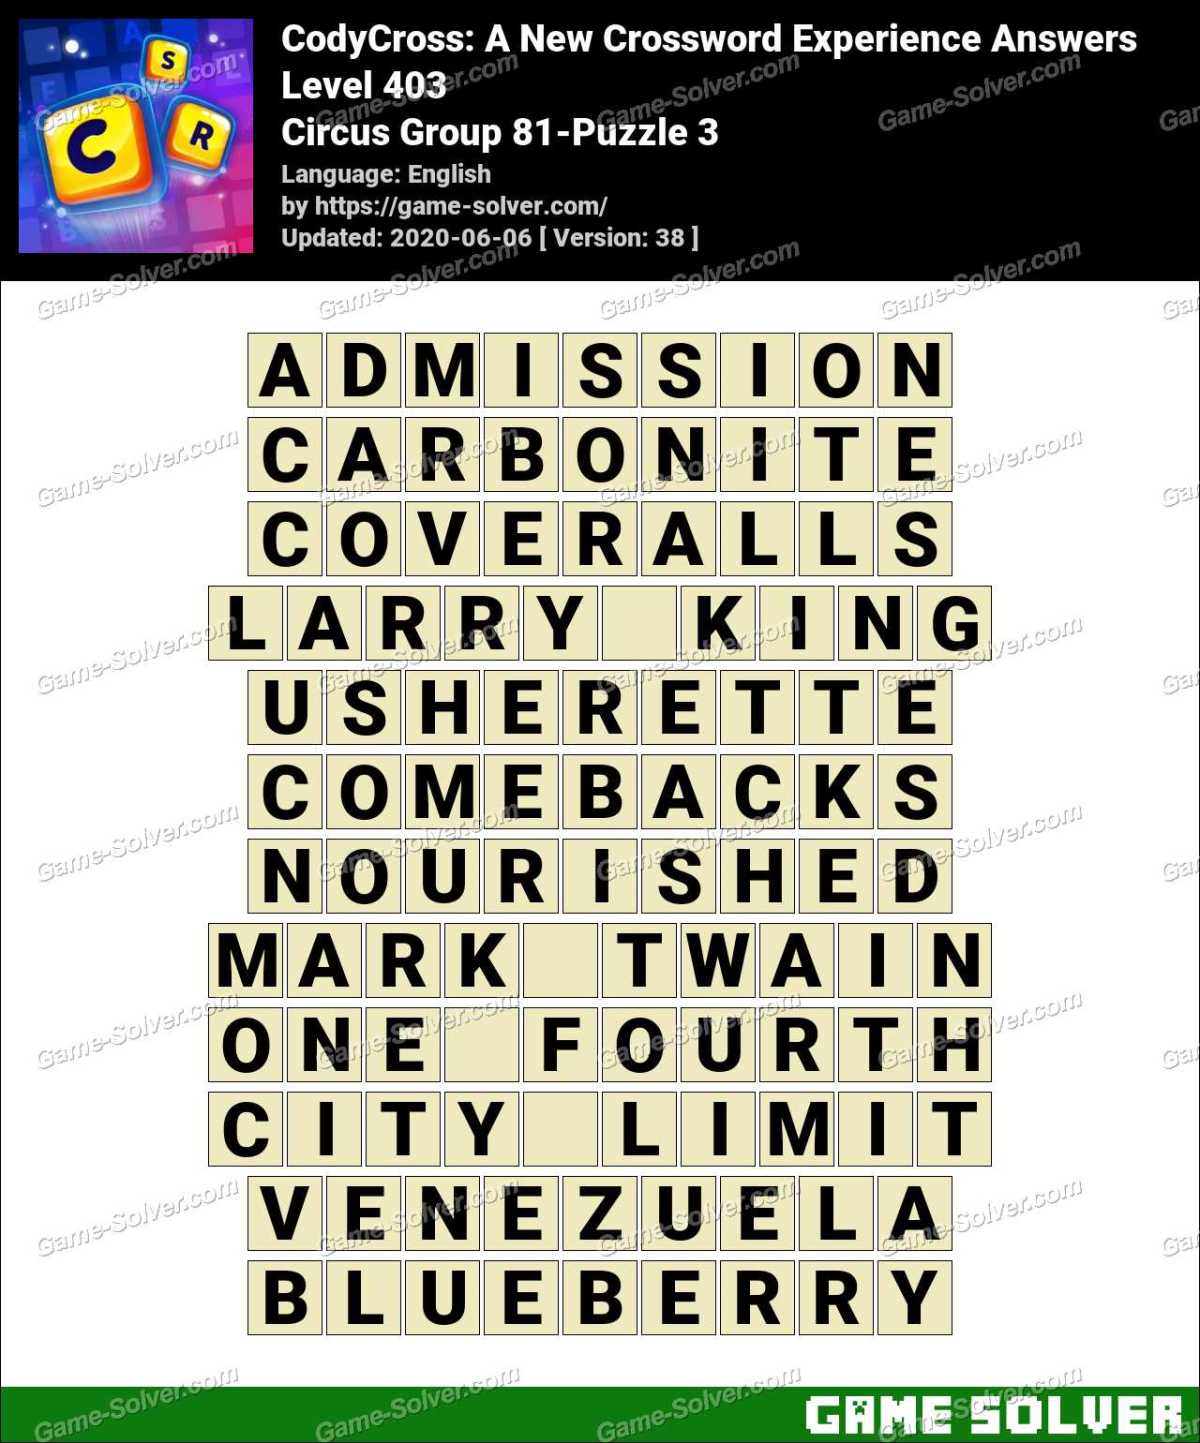 CodyCross Circus Group 81-Puzzle 3 Answers